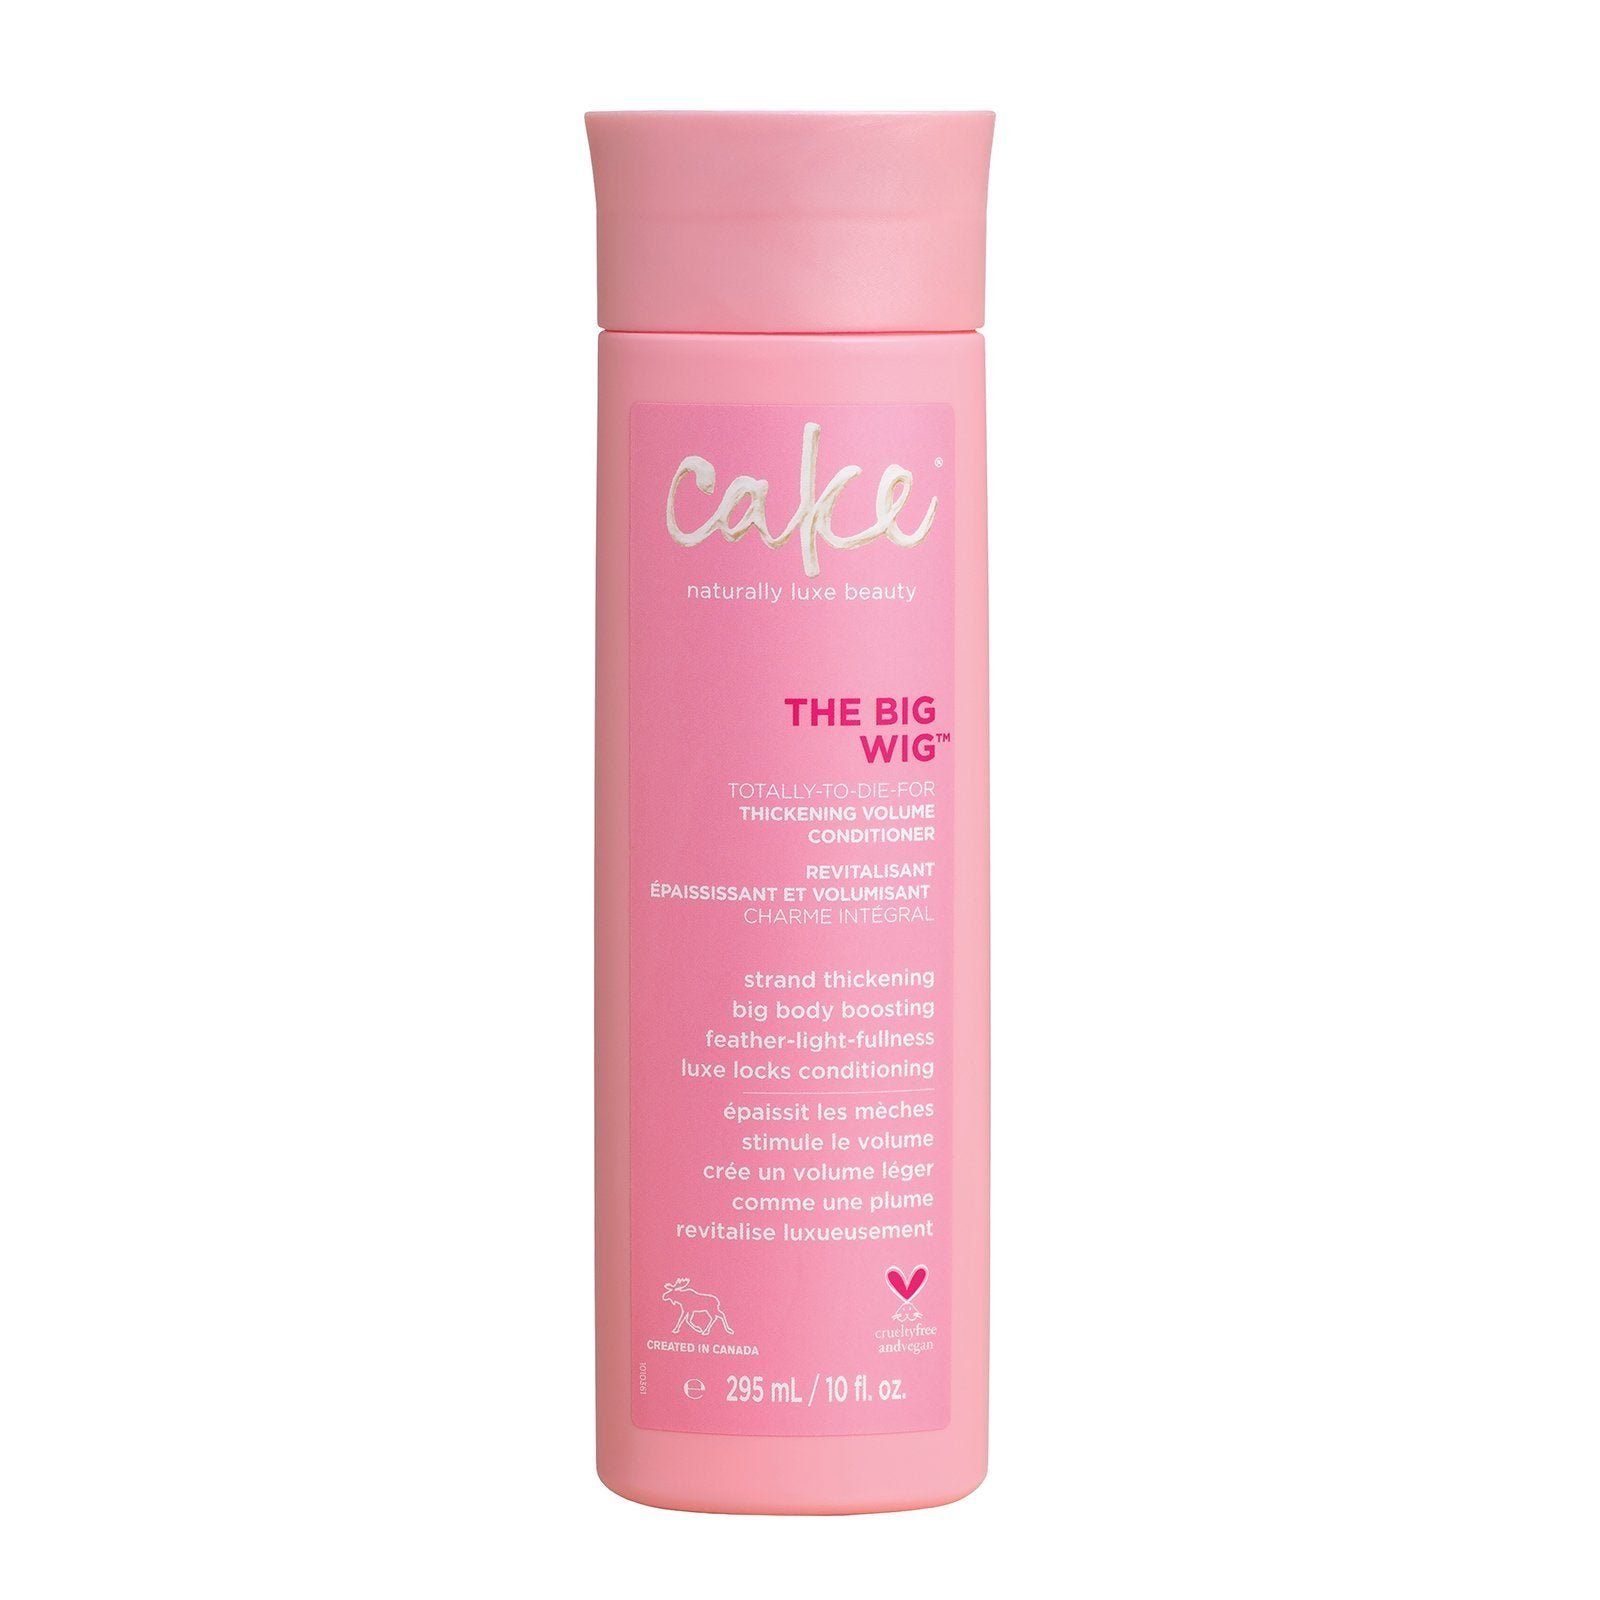 Cake Beauty The Big Wig Thickening Volume Hair Conditioner 295ml